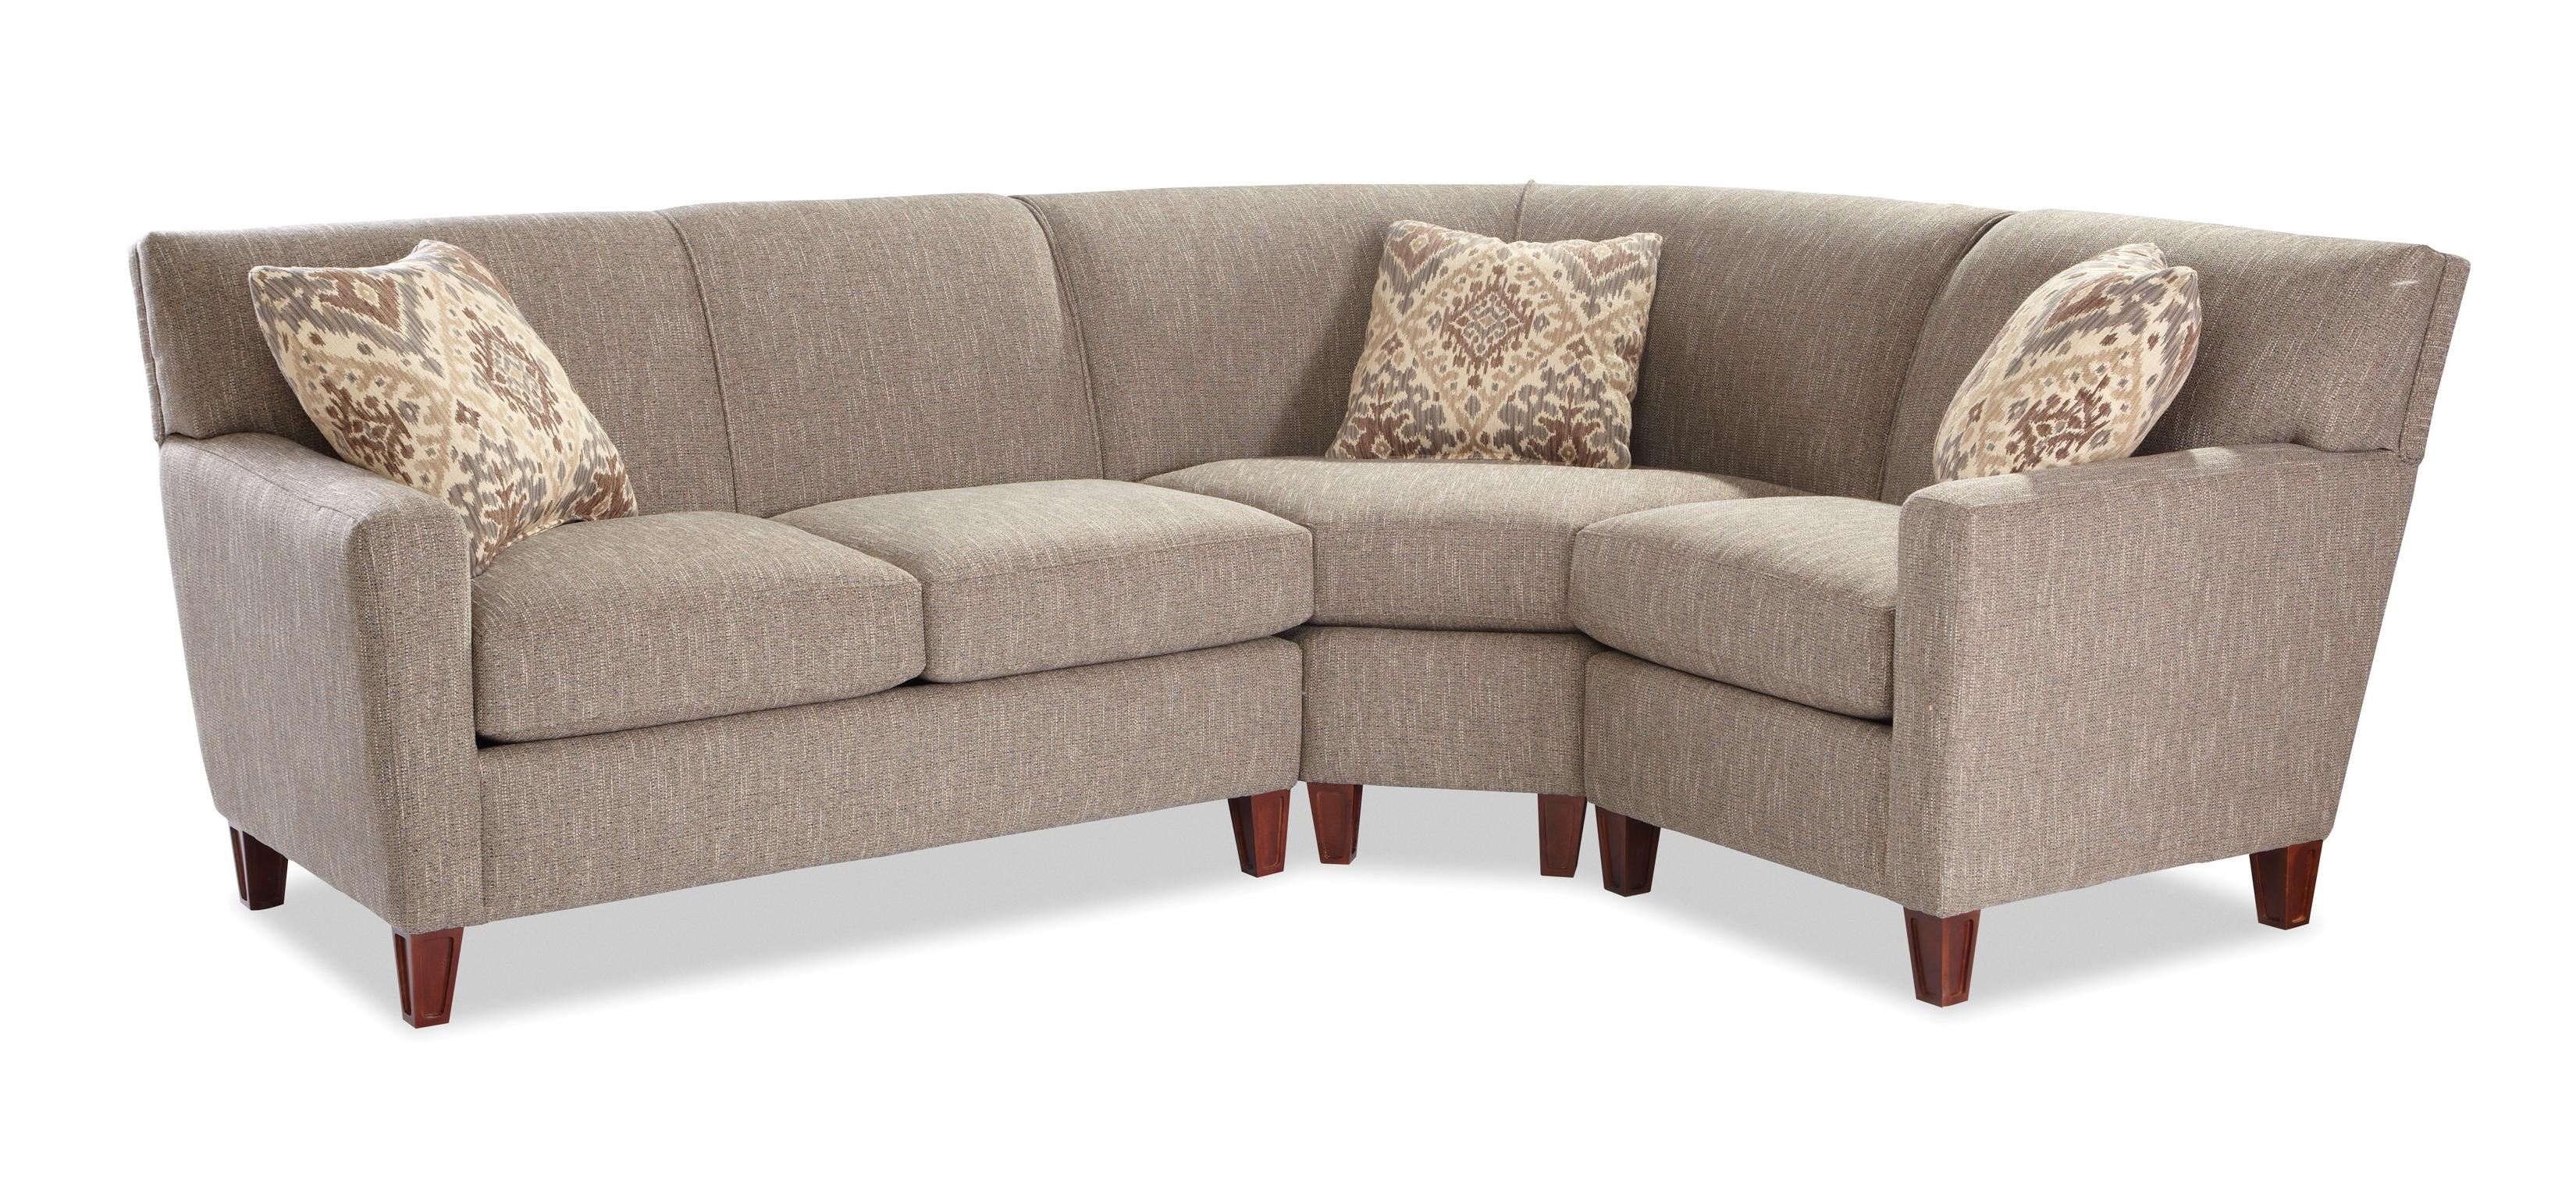 3 pc sectional sofa with recliners asda beds uk craftmaster 7864 three piece laf